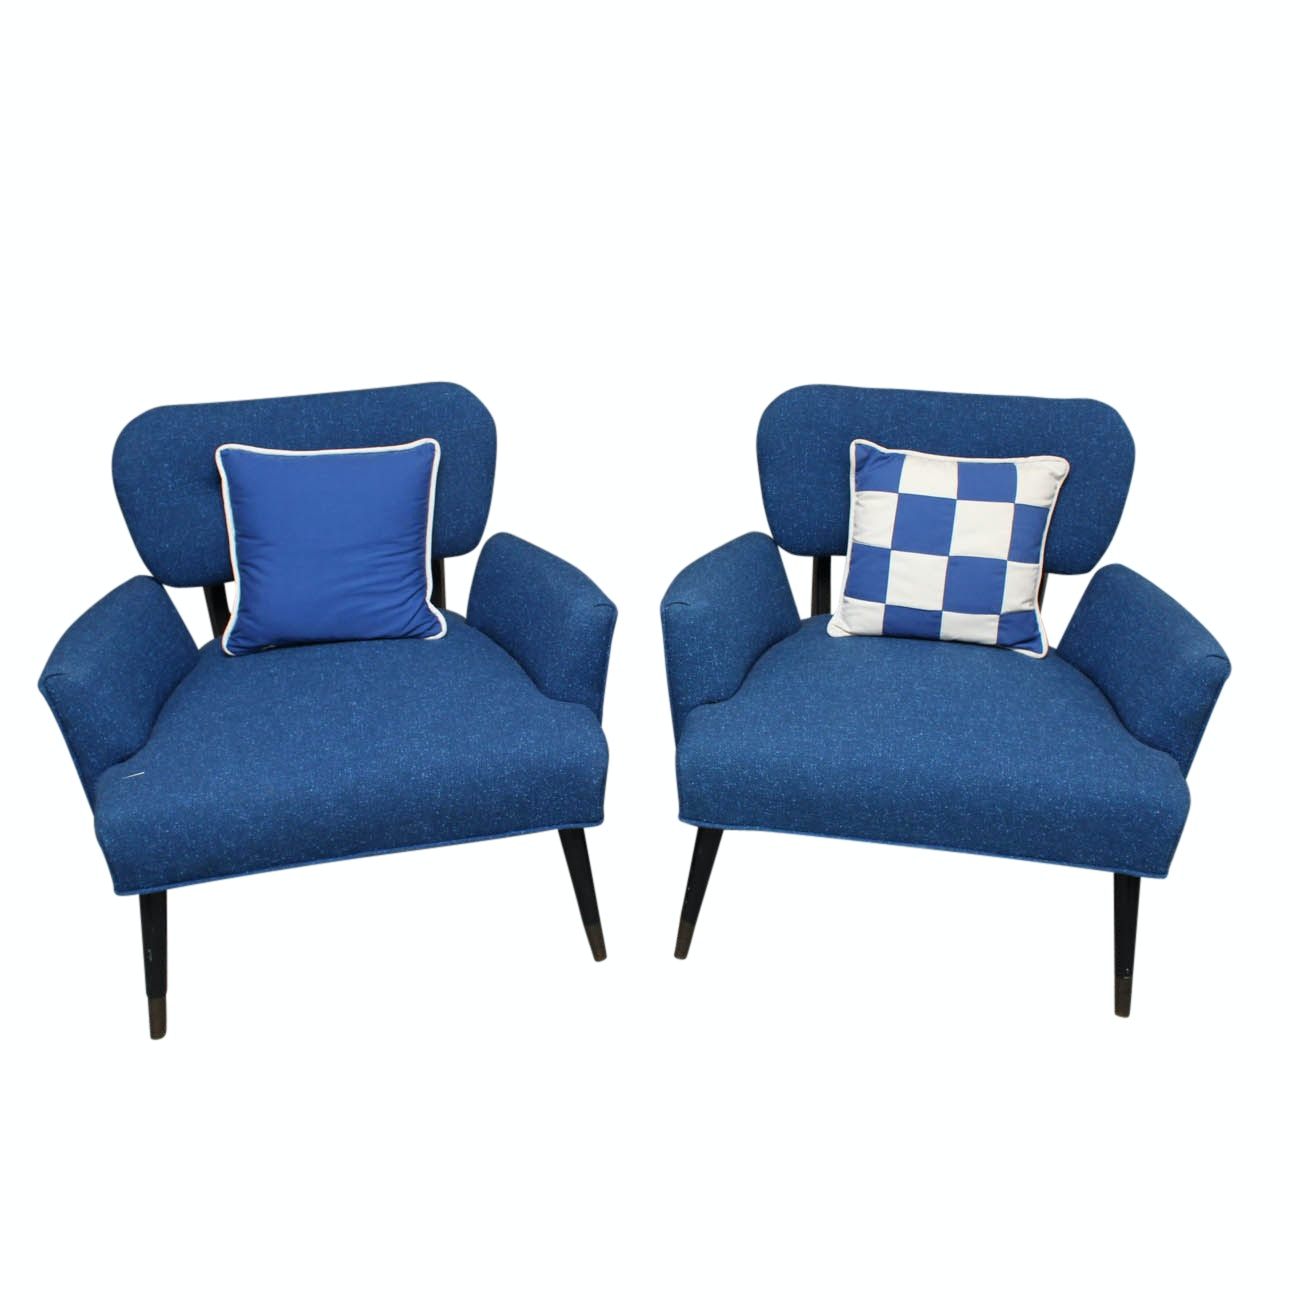 Mid Century Modern Upholstered Chairs